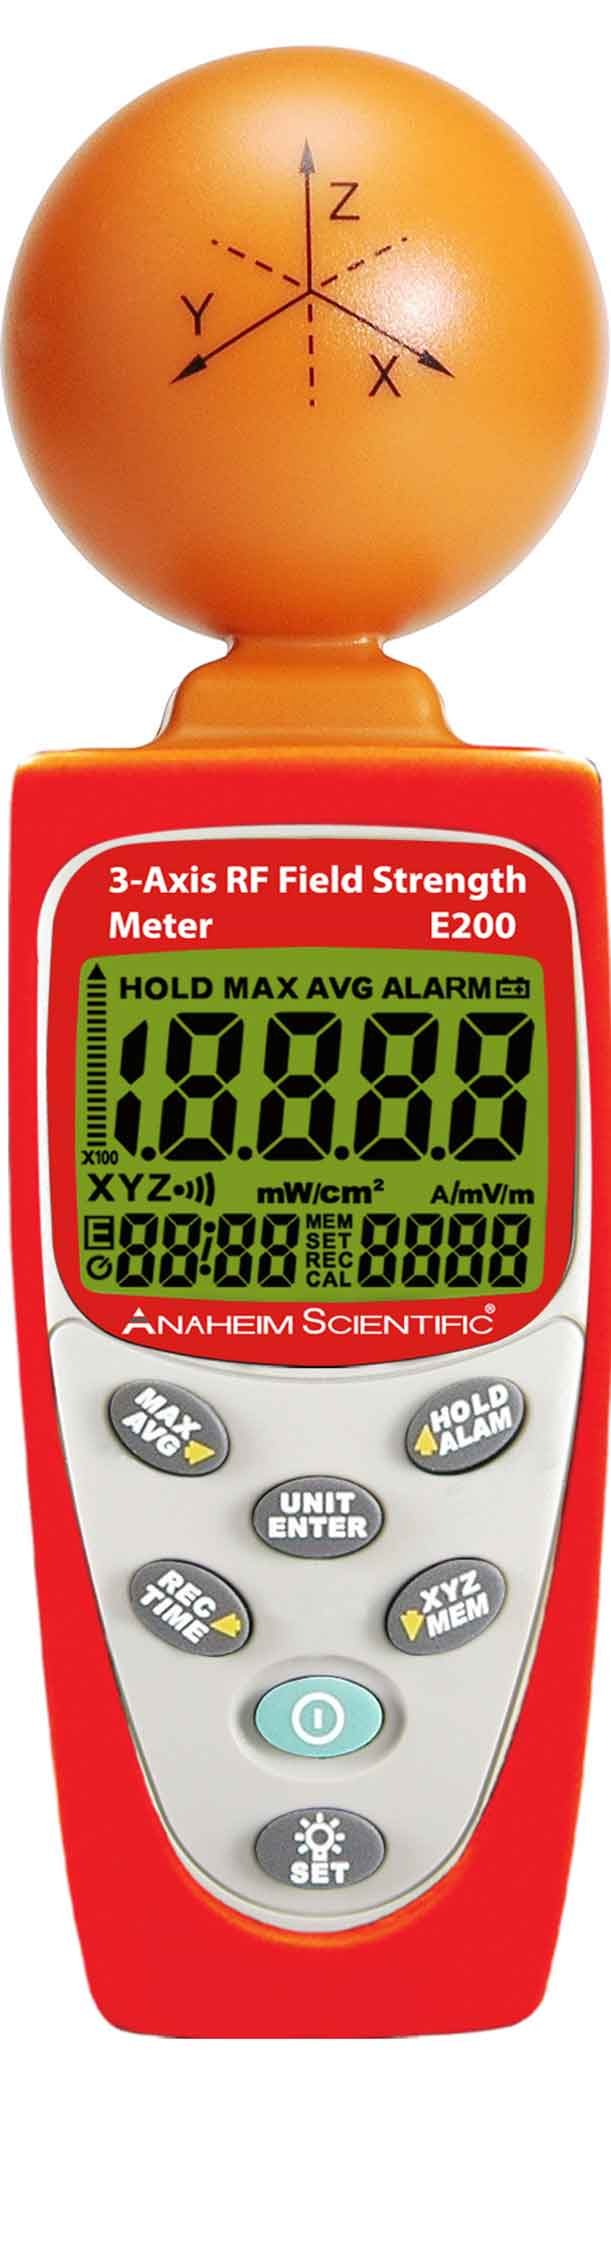 Global Specialties E200 3-Axis RF Field Strength Meter Photo